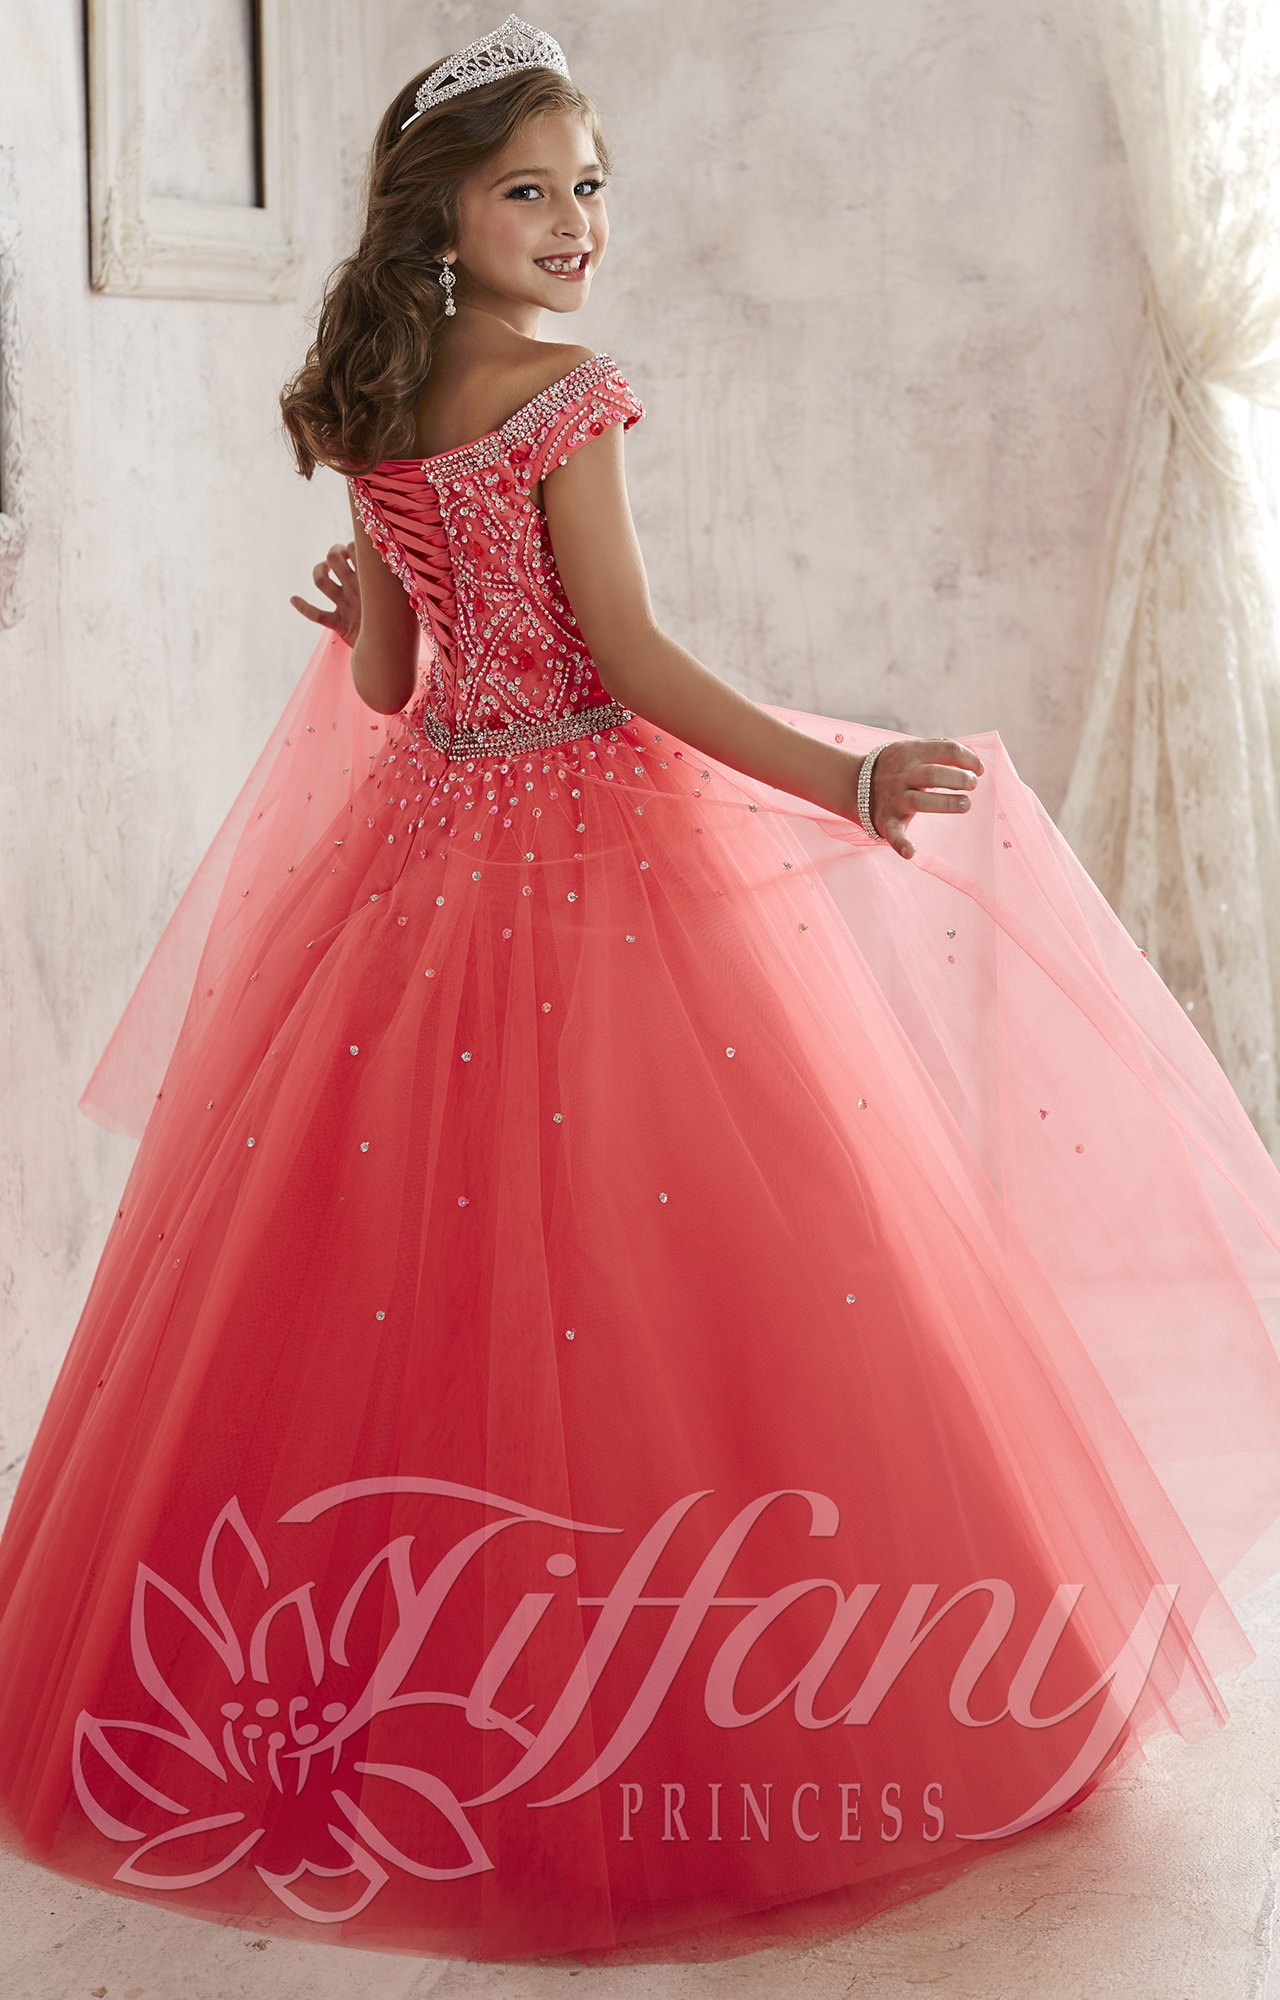 Tiffany Princess 13458 Coronation Gown Prom Dress